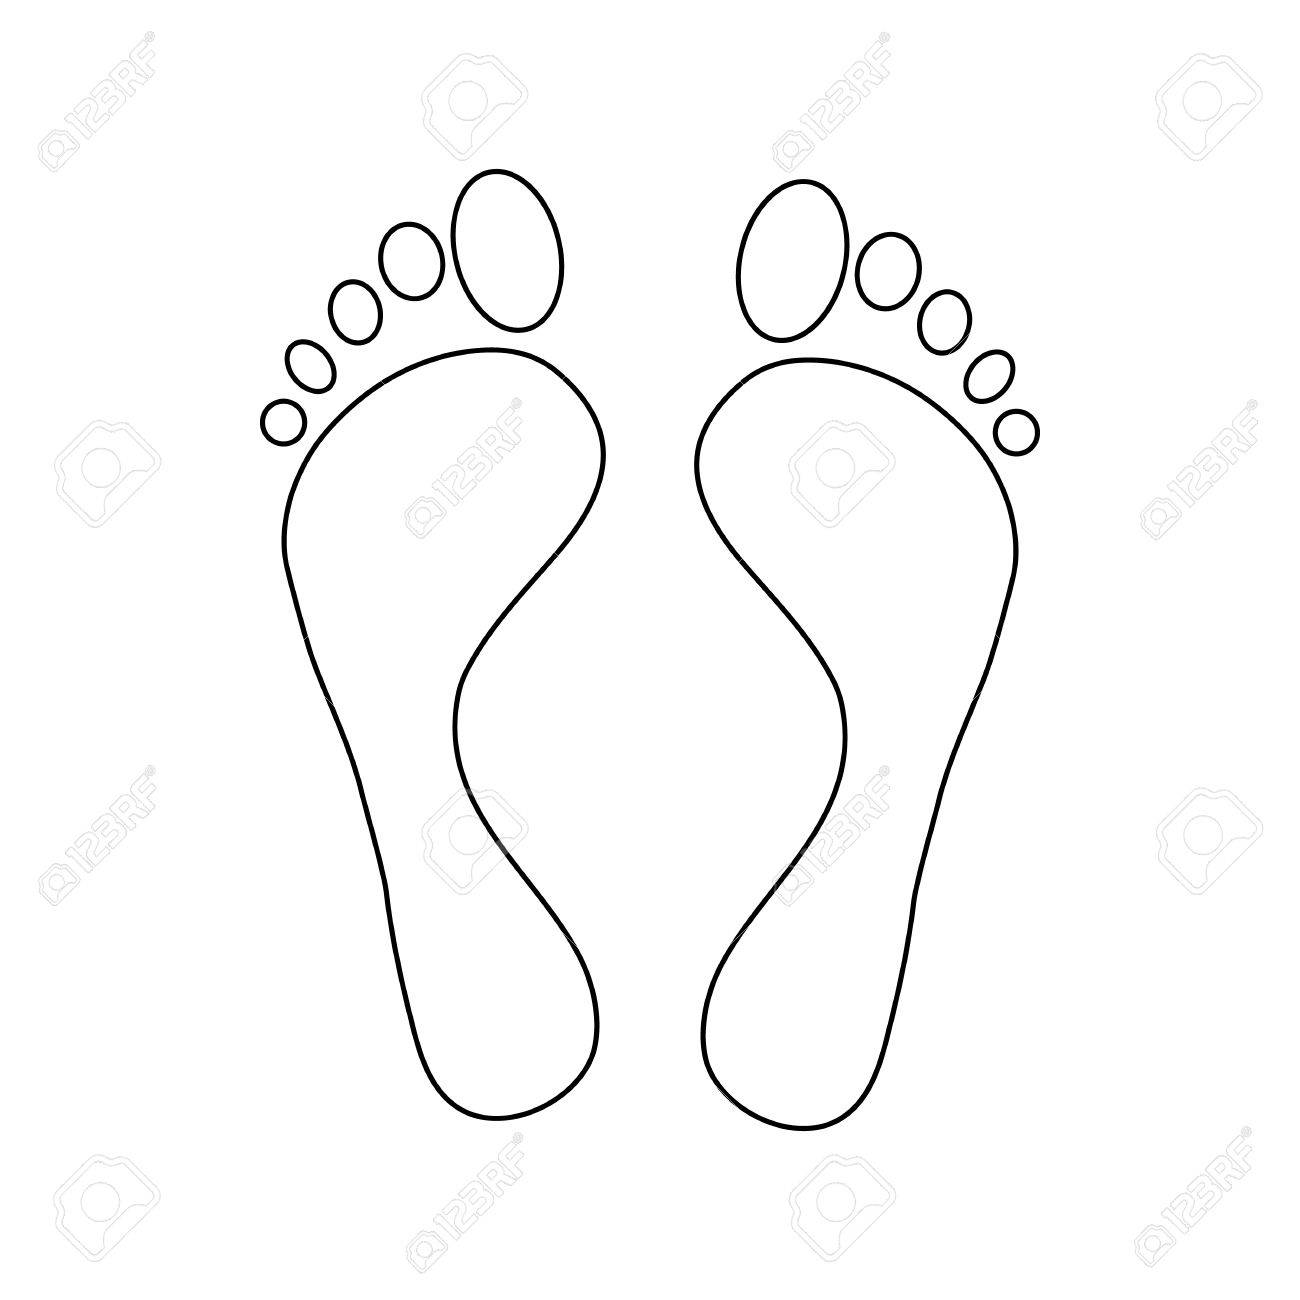 foot outline drawing at getdrawings  free download